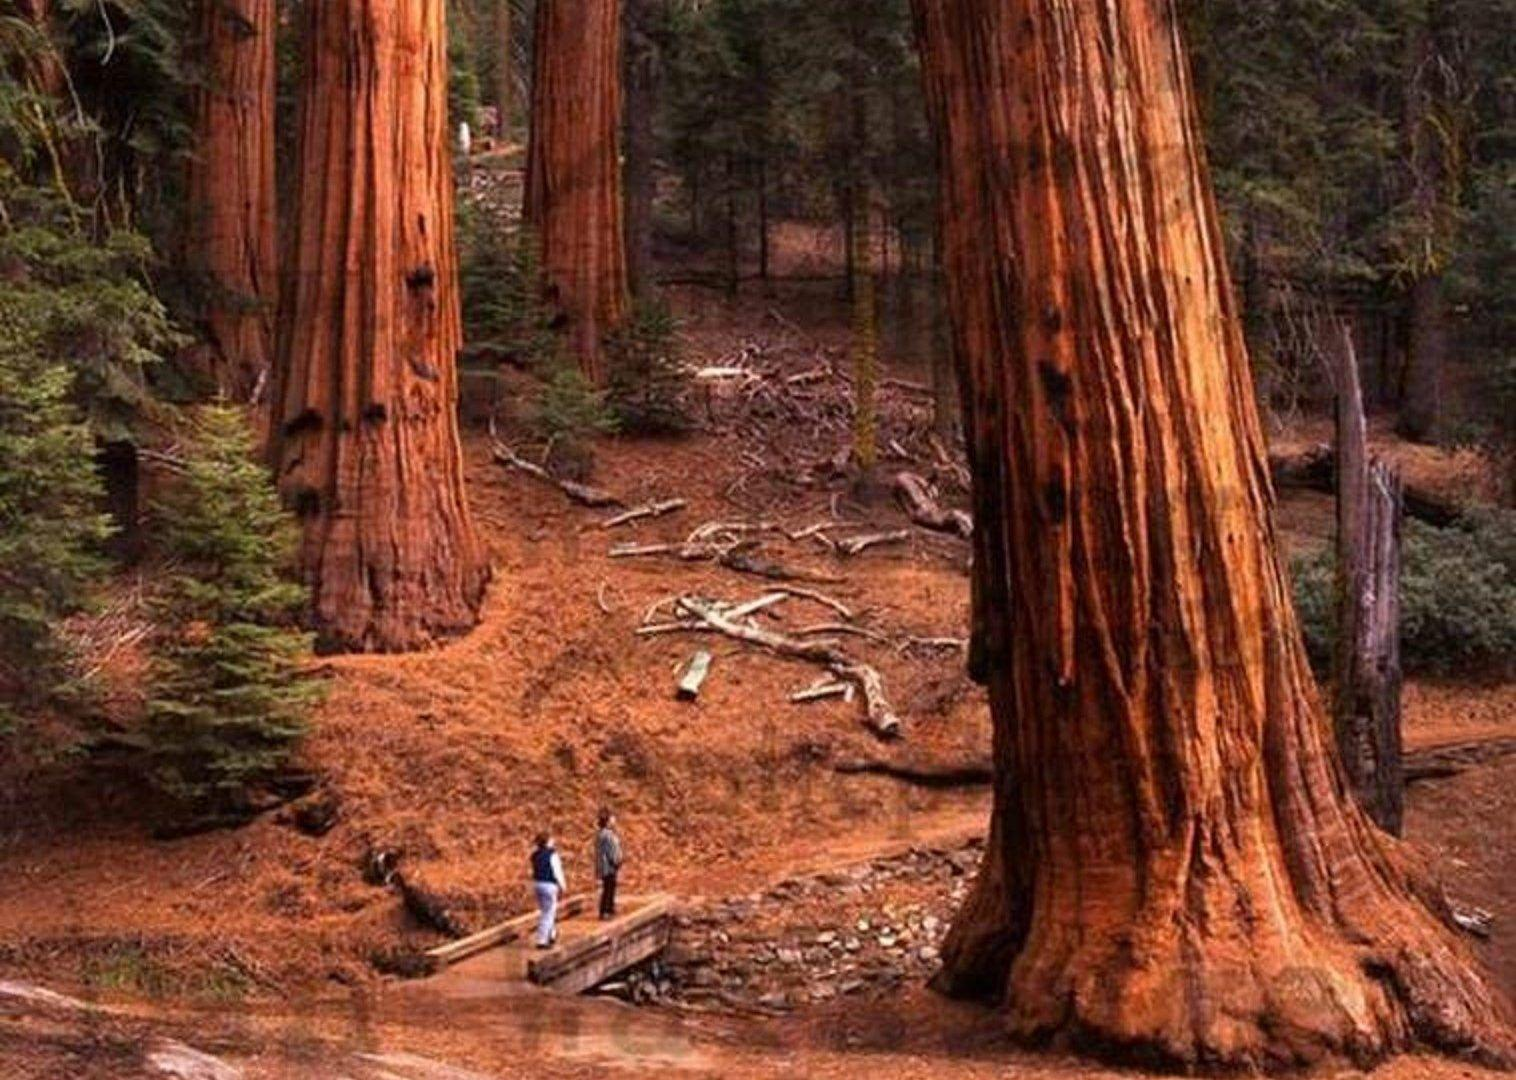 Redwoods Tag wallpapers: Trees Forest Redwoods Ferns Nature HD